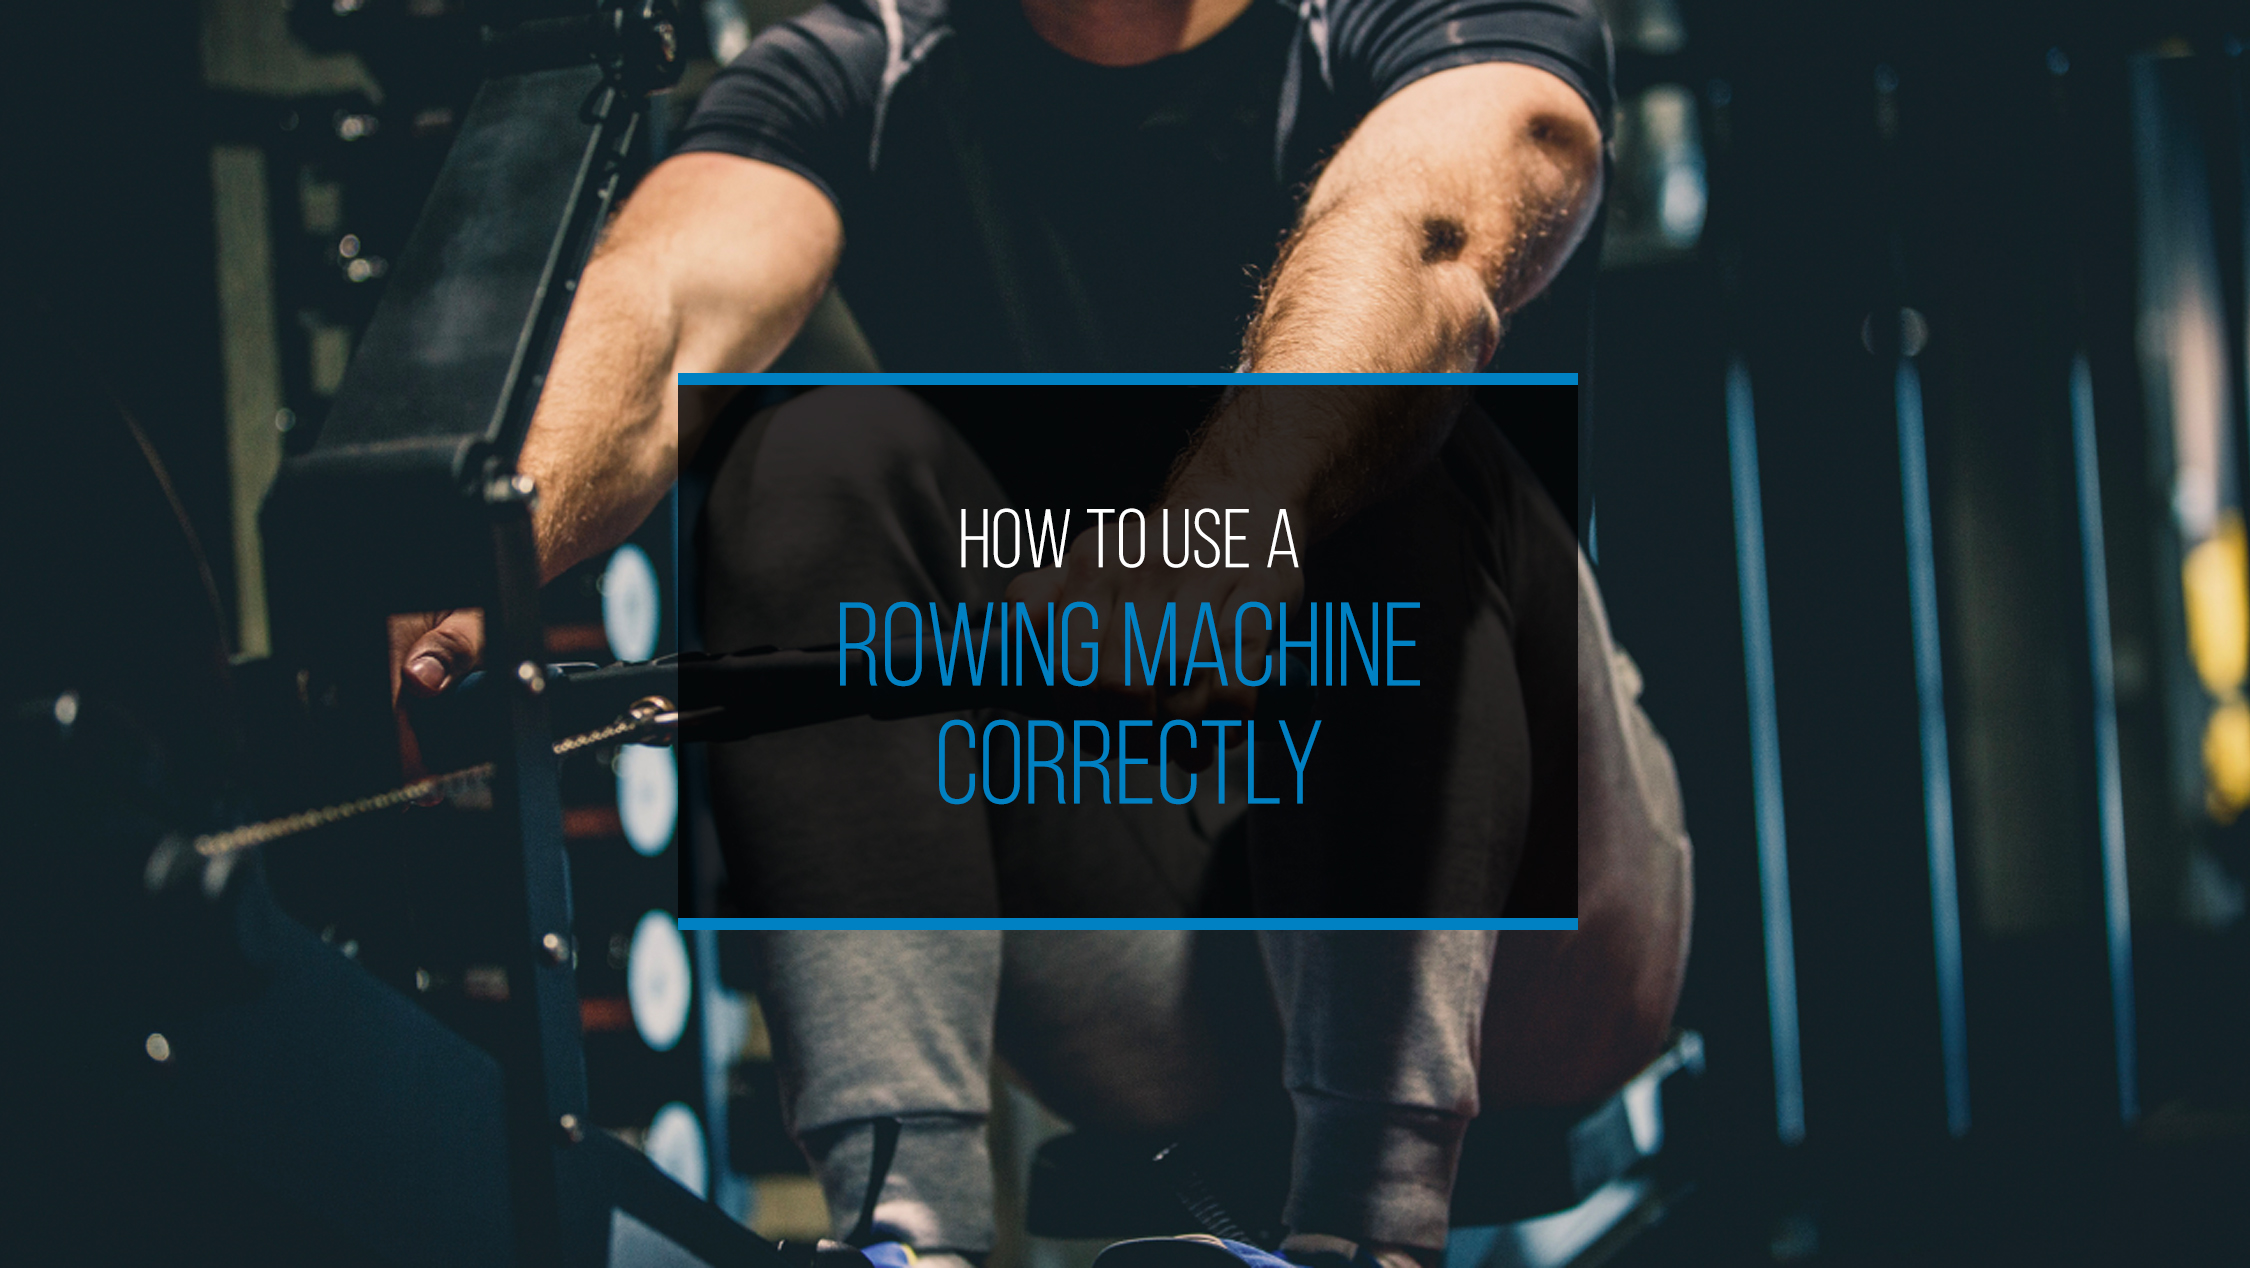 How to Use a Rowing Machine Correctly - WP